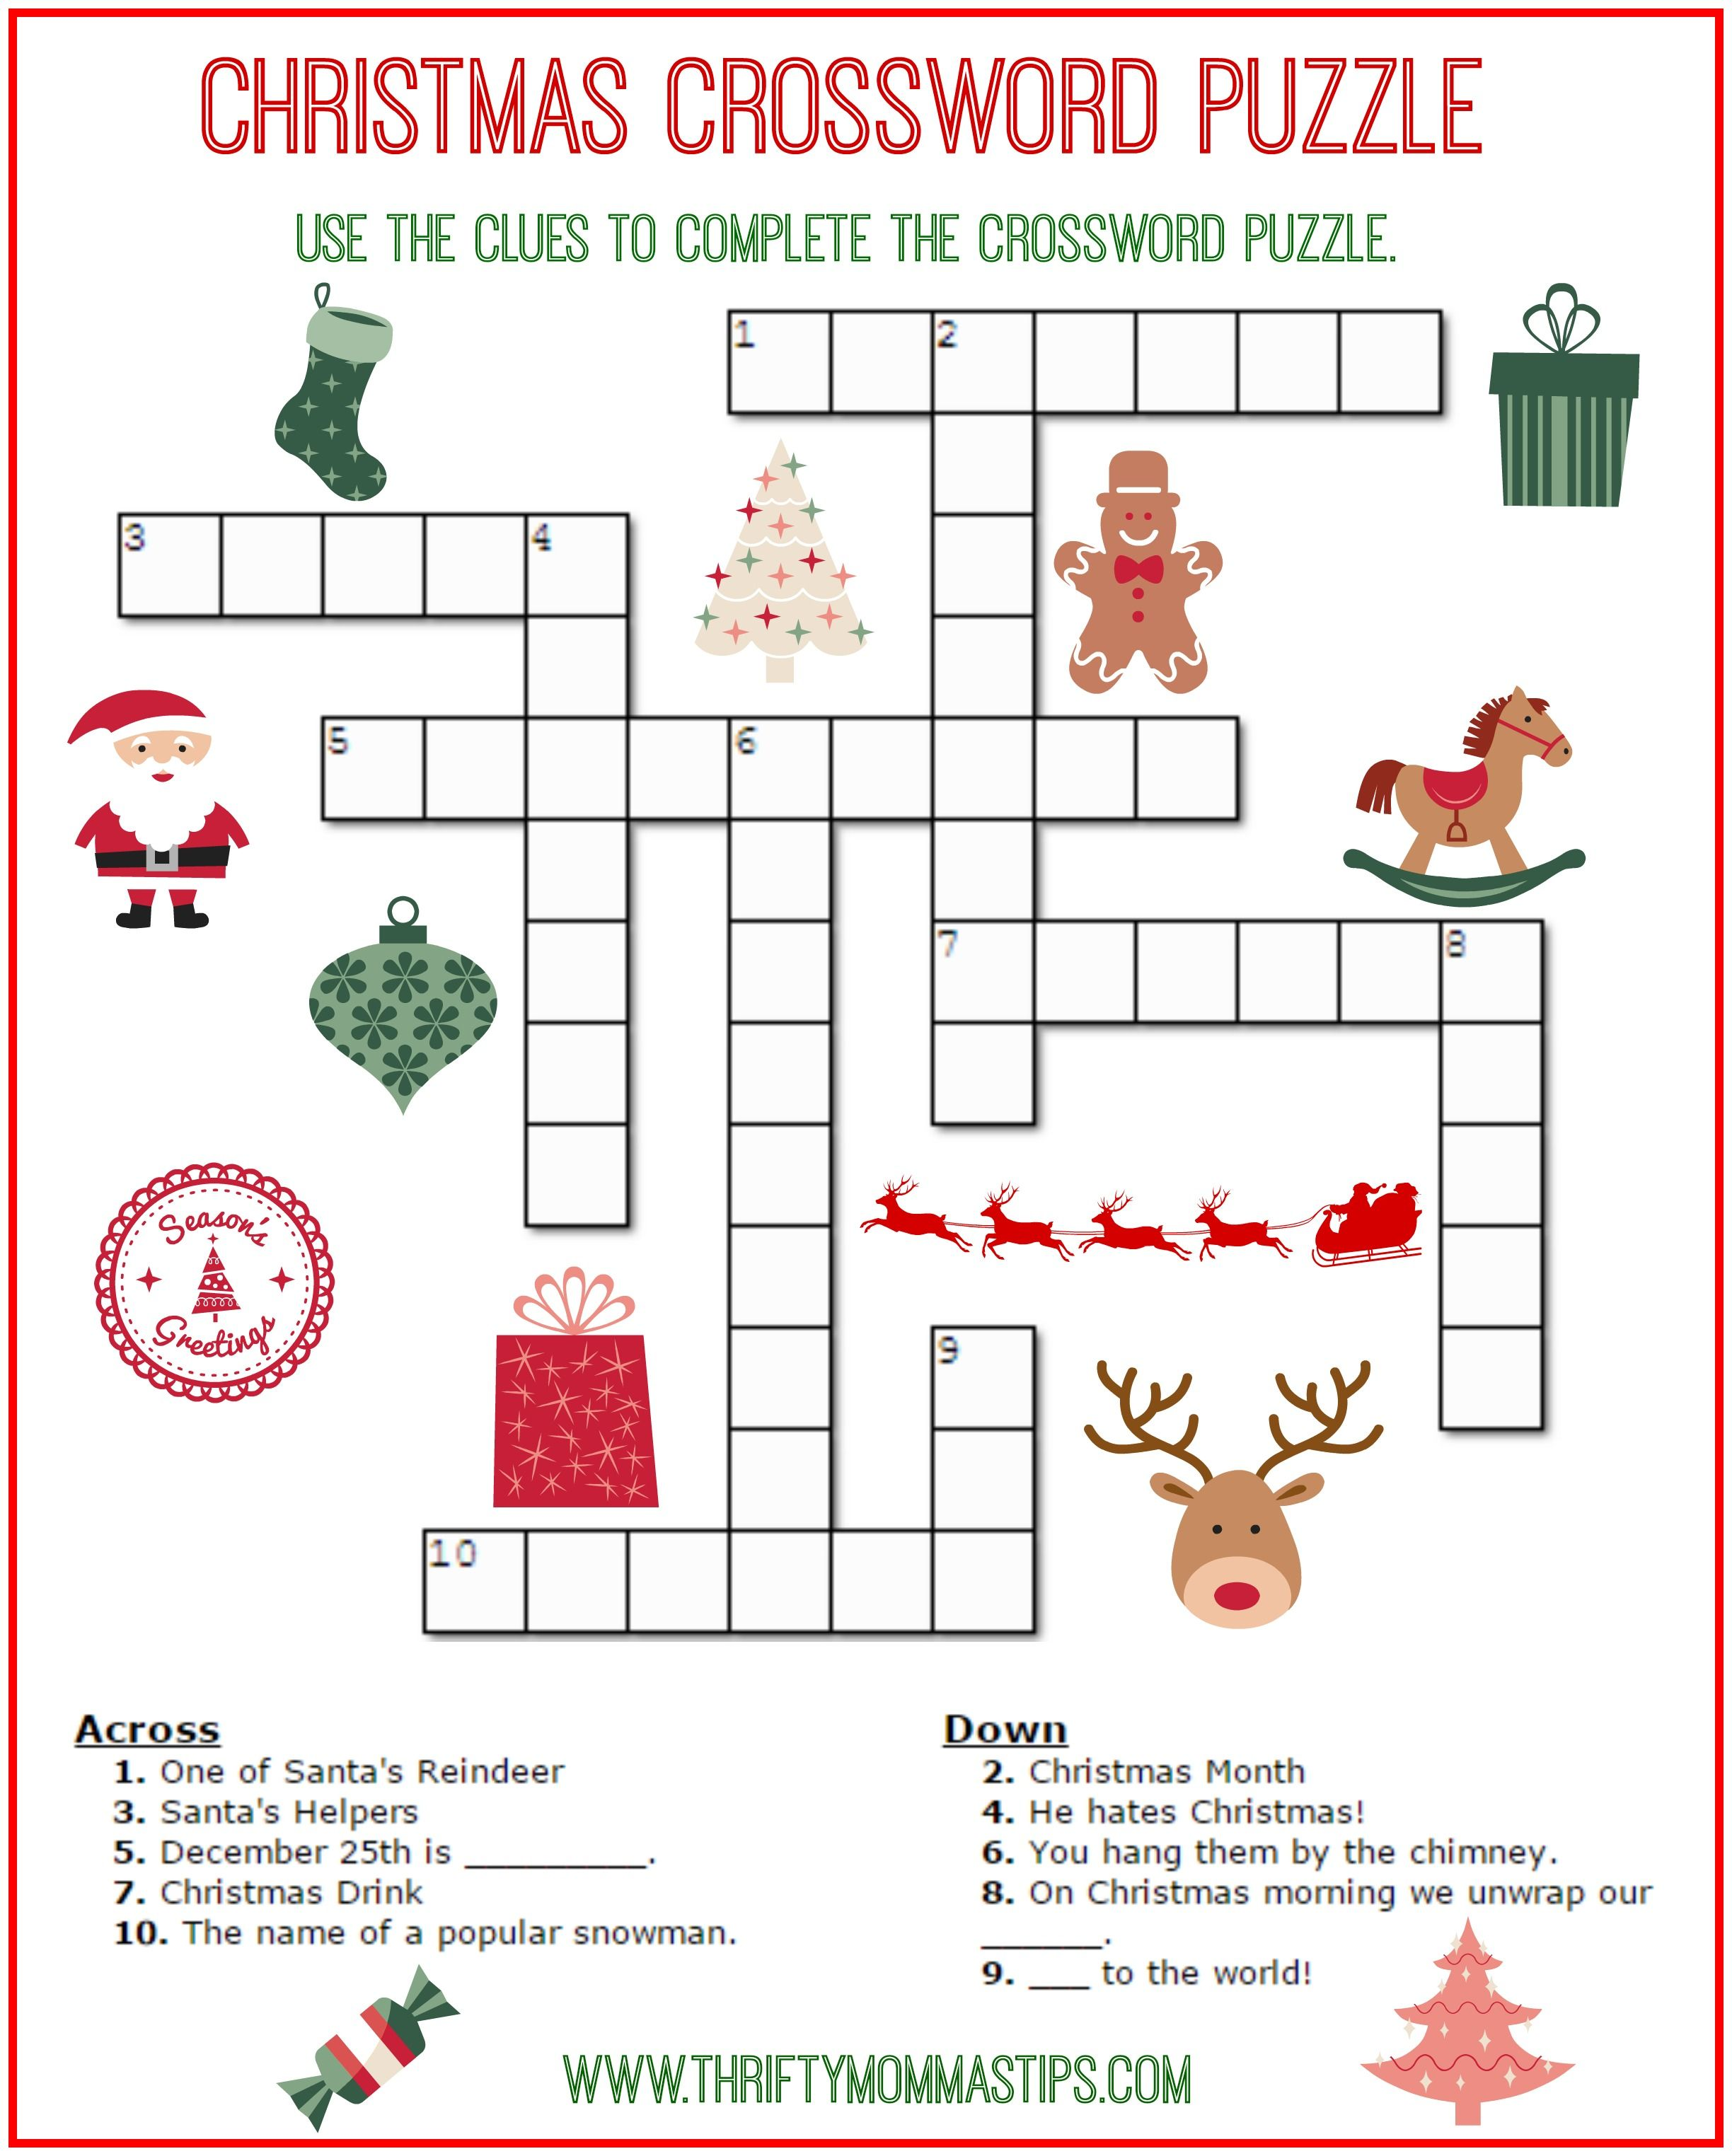 Christmas Crossword Puzzle Printable Thrifty Mommas Tips